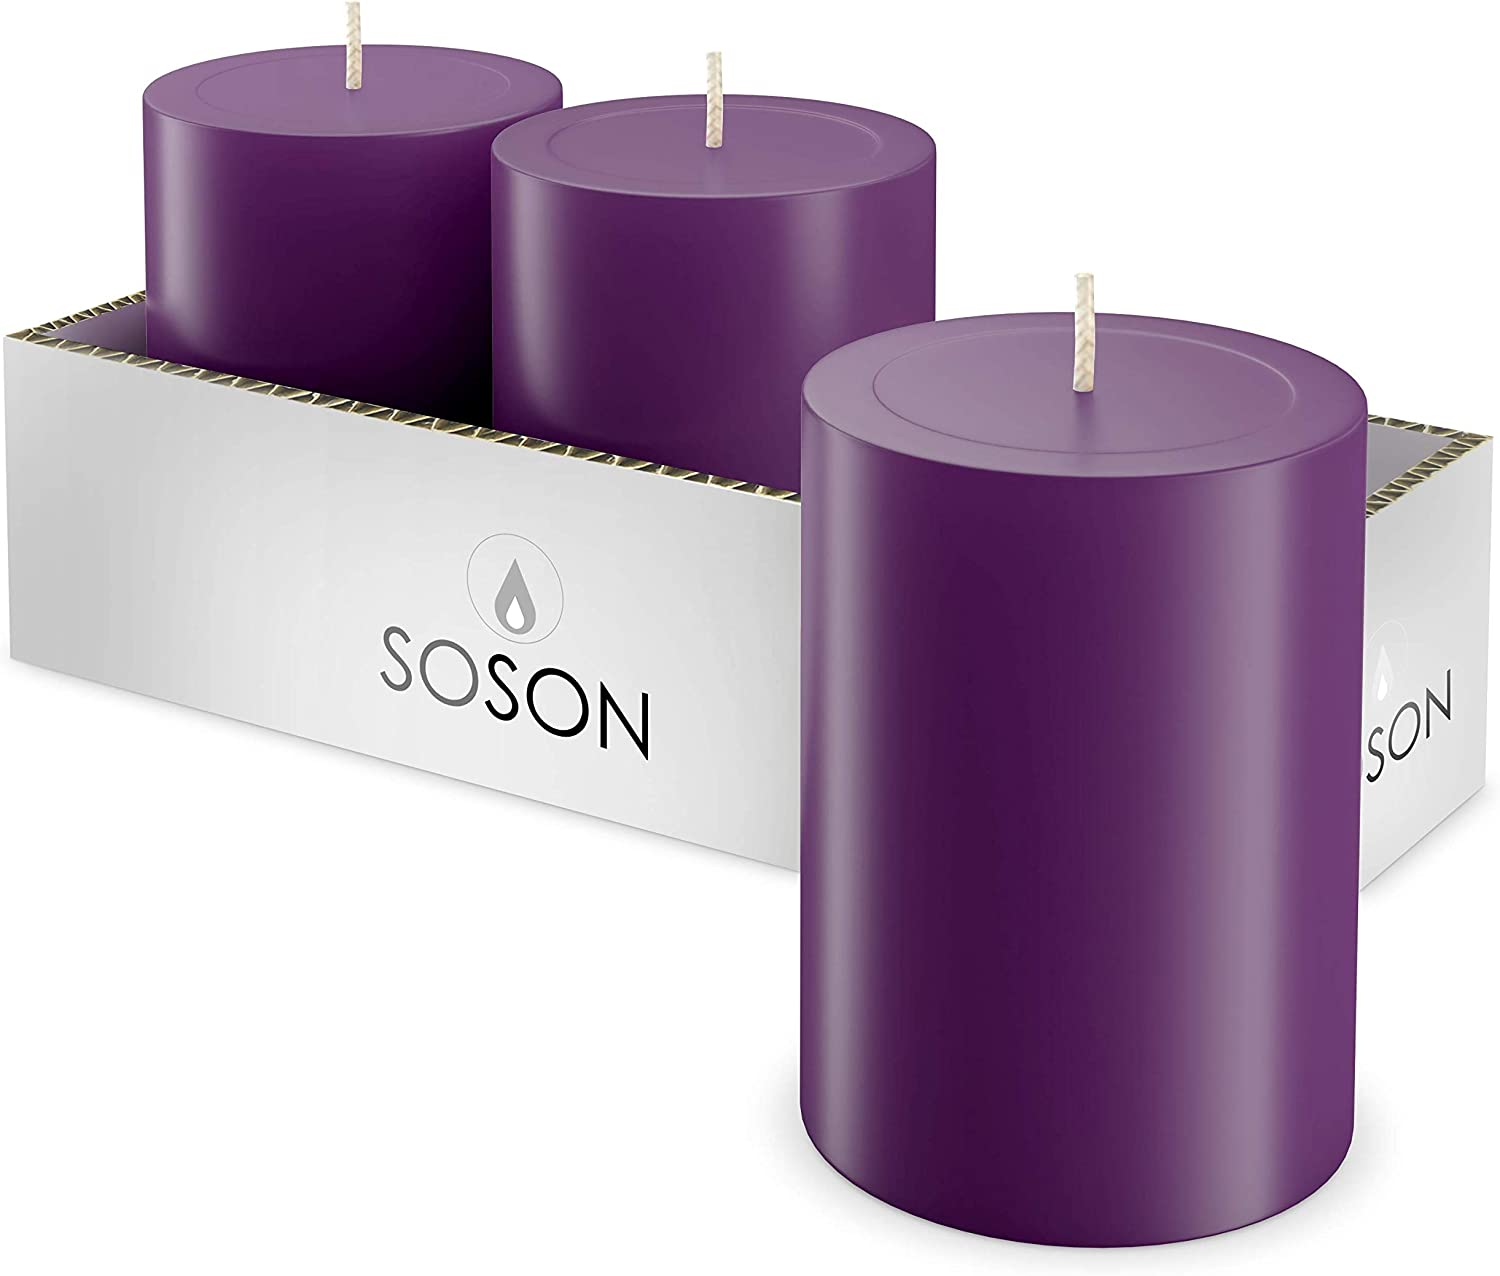 Simply Soson Smooth 3x4 Eggplant Purple Candles | Pillar Candles for Home | Unscented Candles & Dripless Pillar Candles | Long Lasting Candles | Large Candle for Home | 3 Pack of Candles